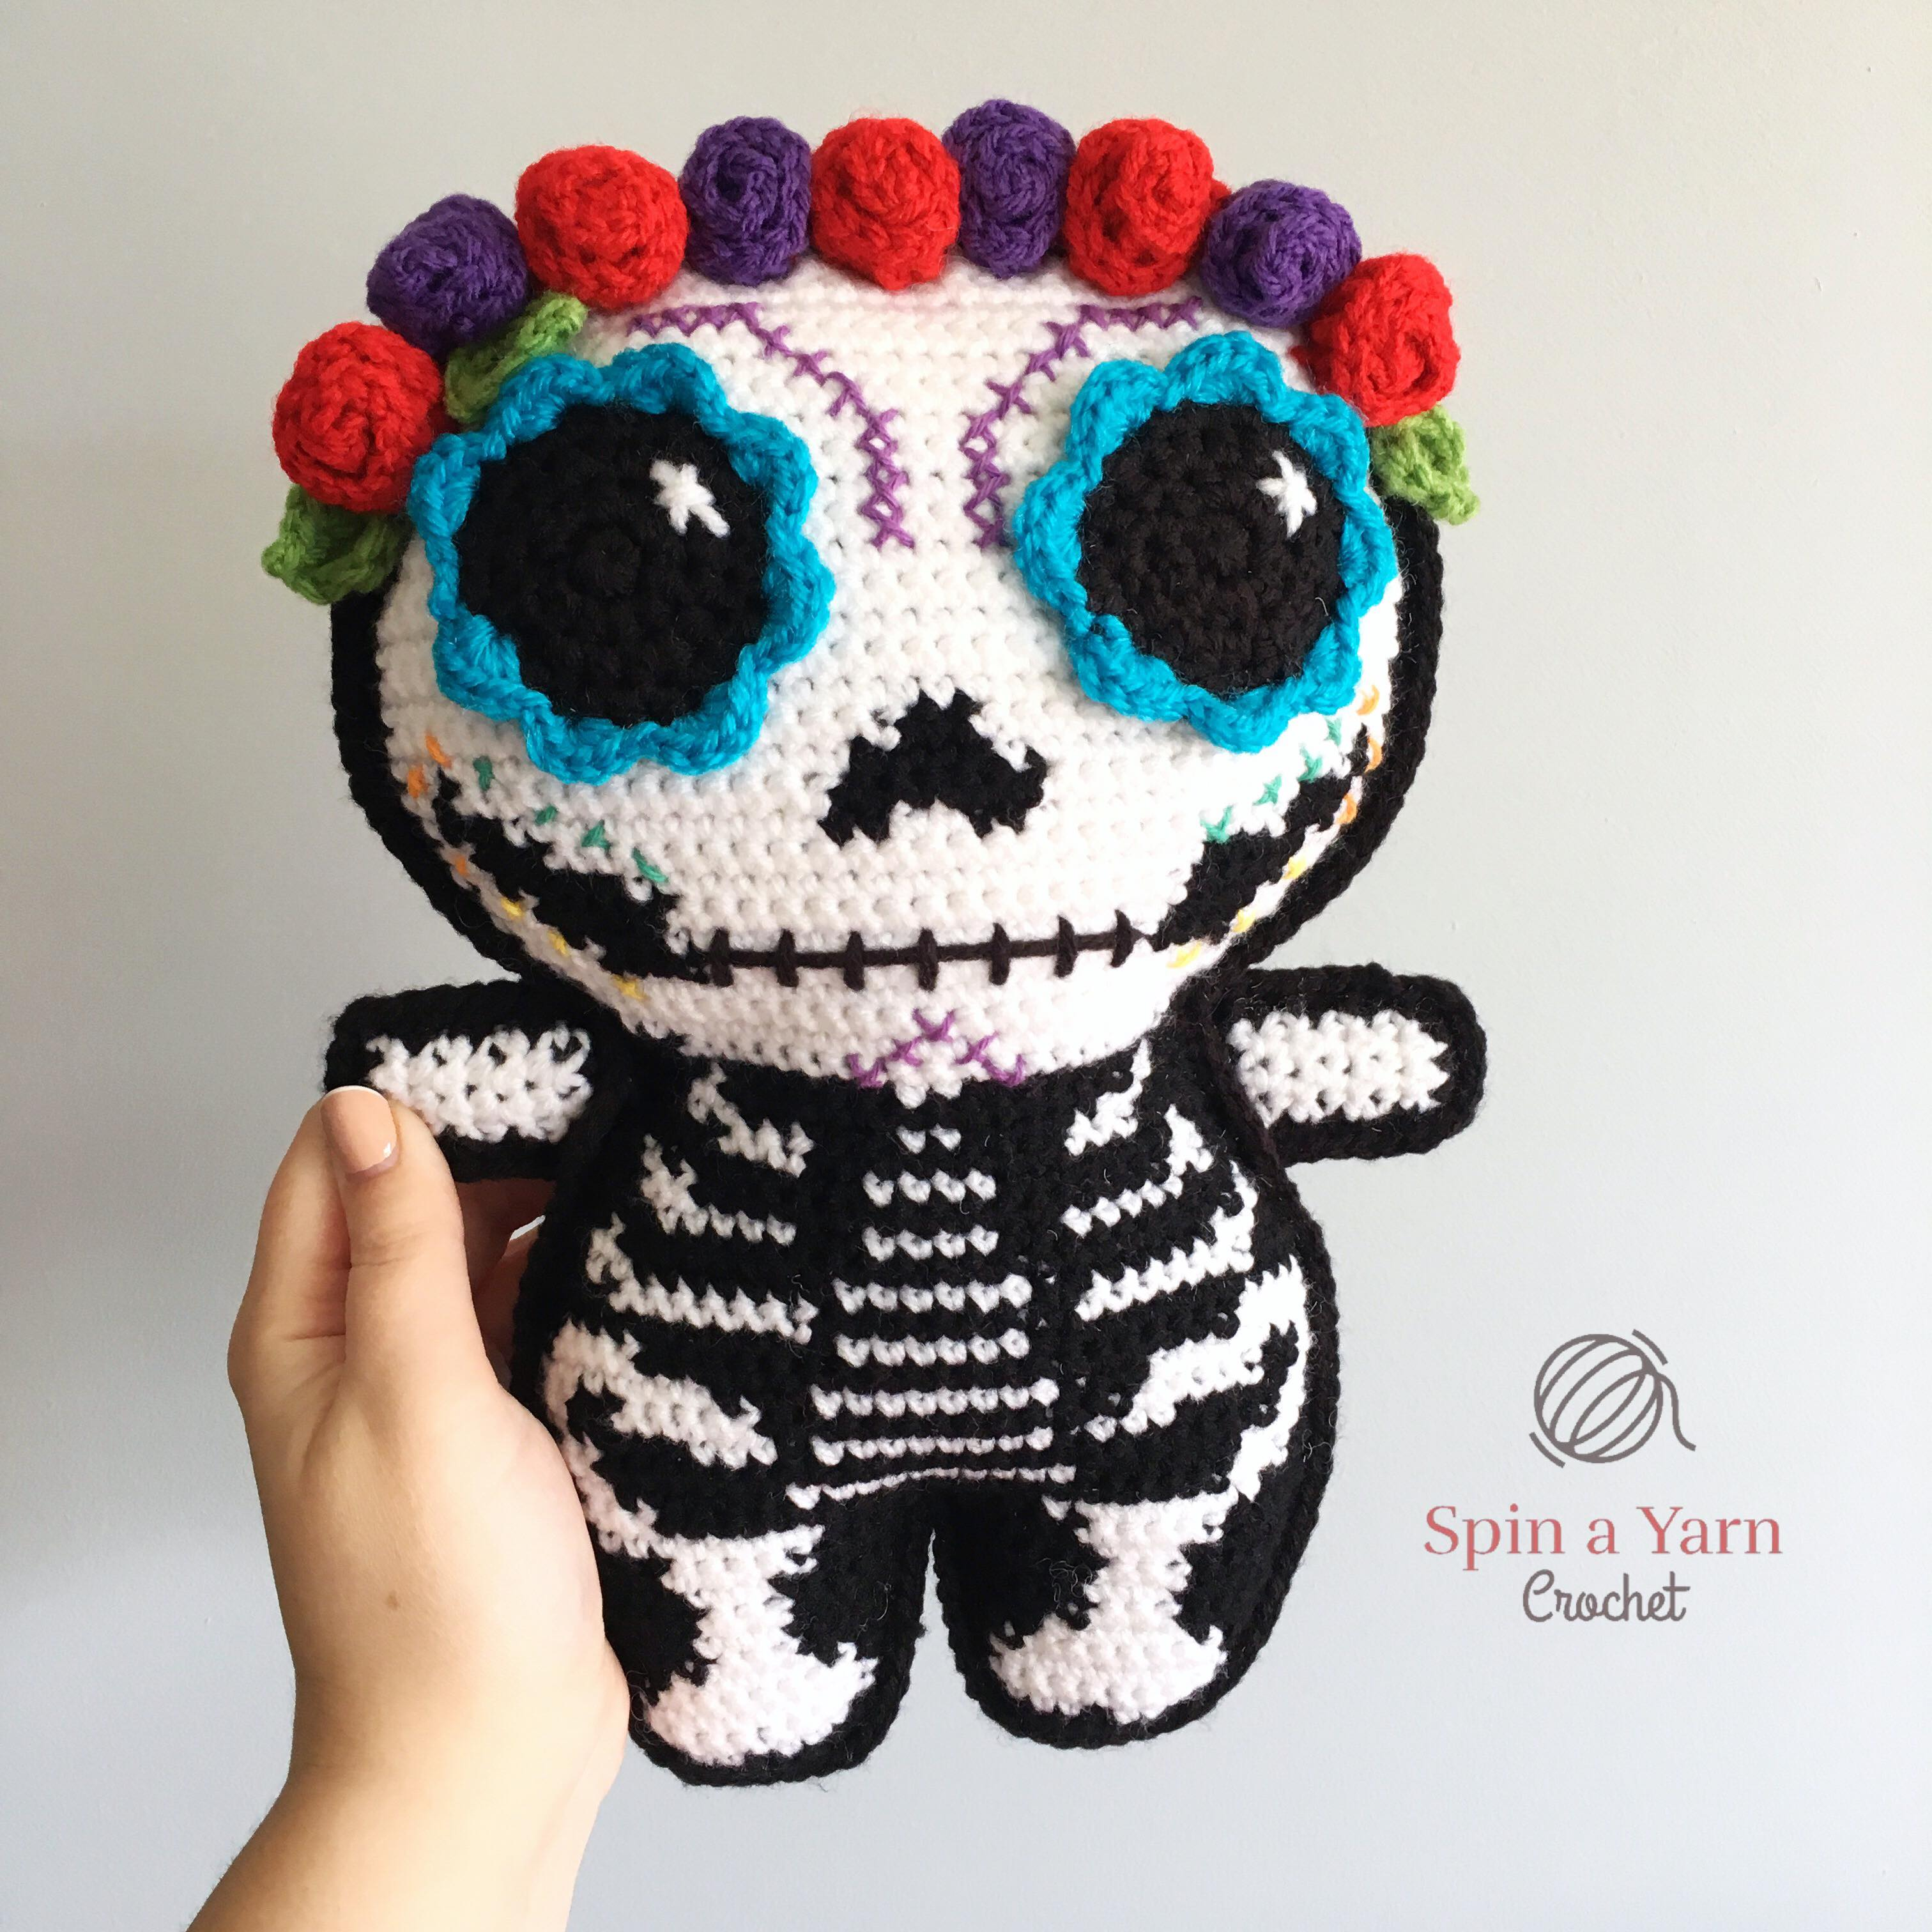 Glinting Eyes for Amigurumi | PlanetJune by June Gilbank: Blog | 3024x3024